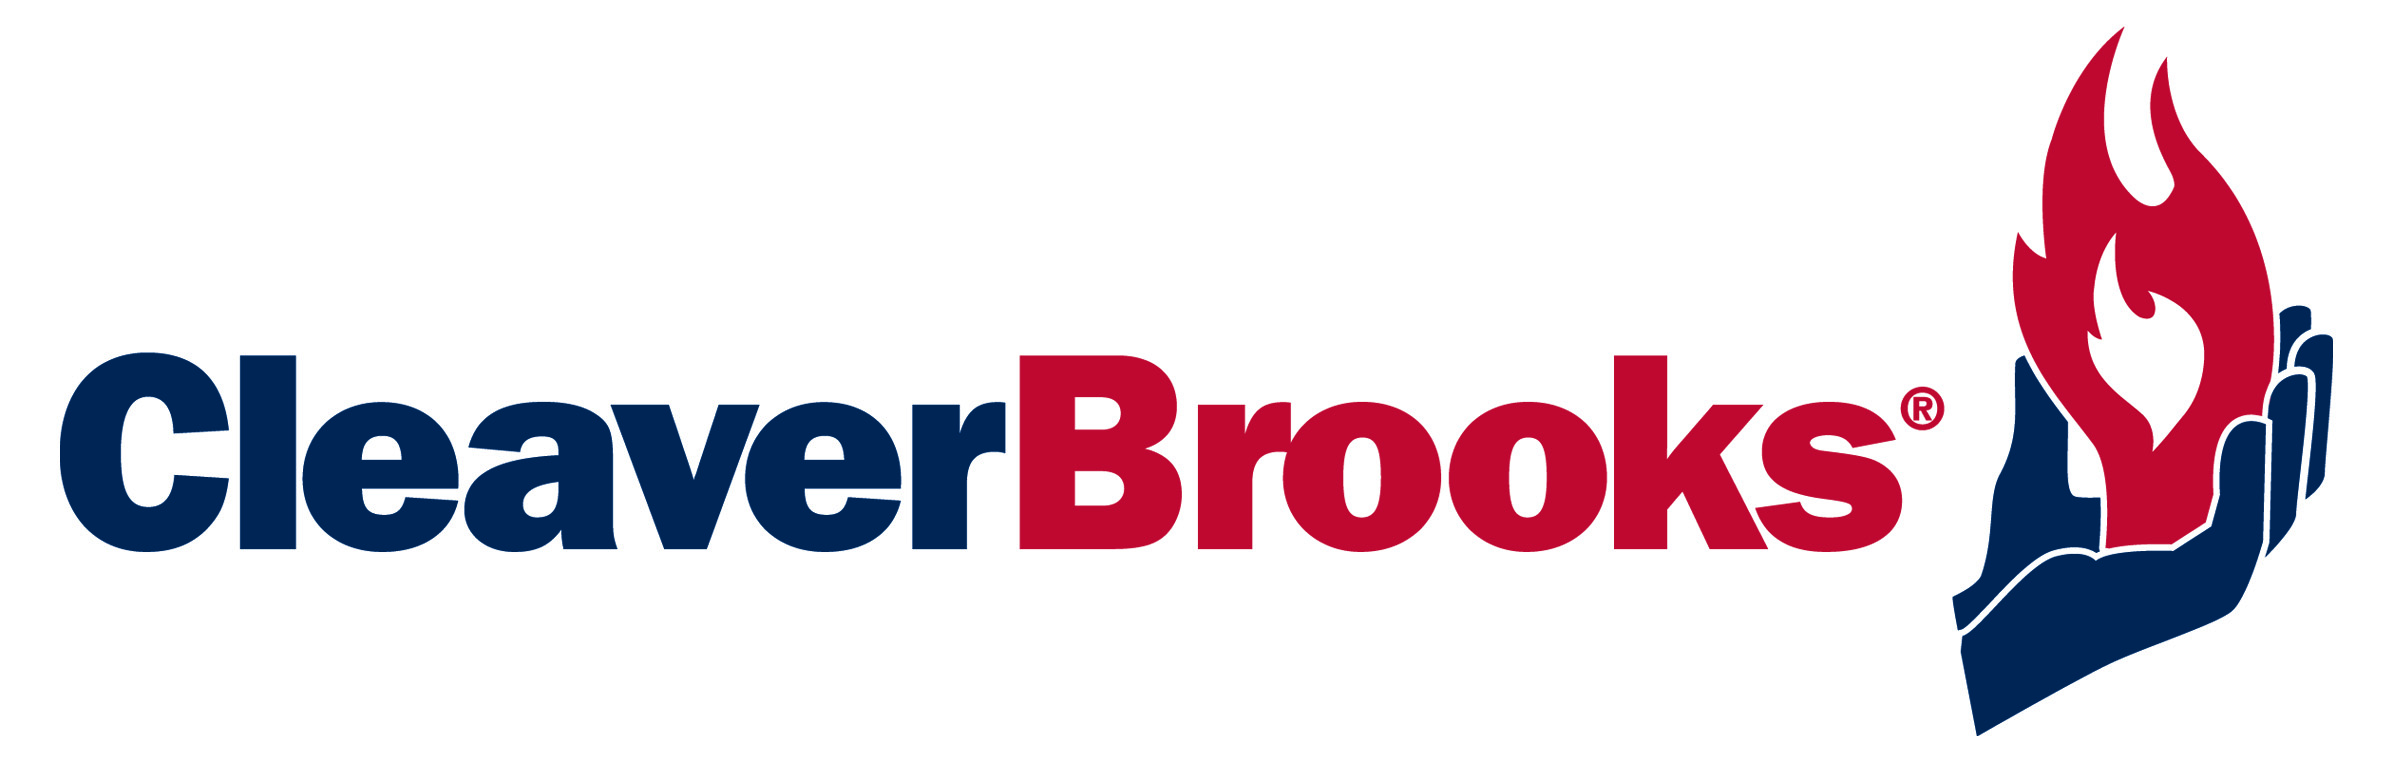 cleaver brooks firetube and watertube boilers service solutions